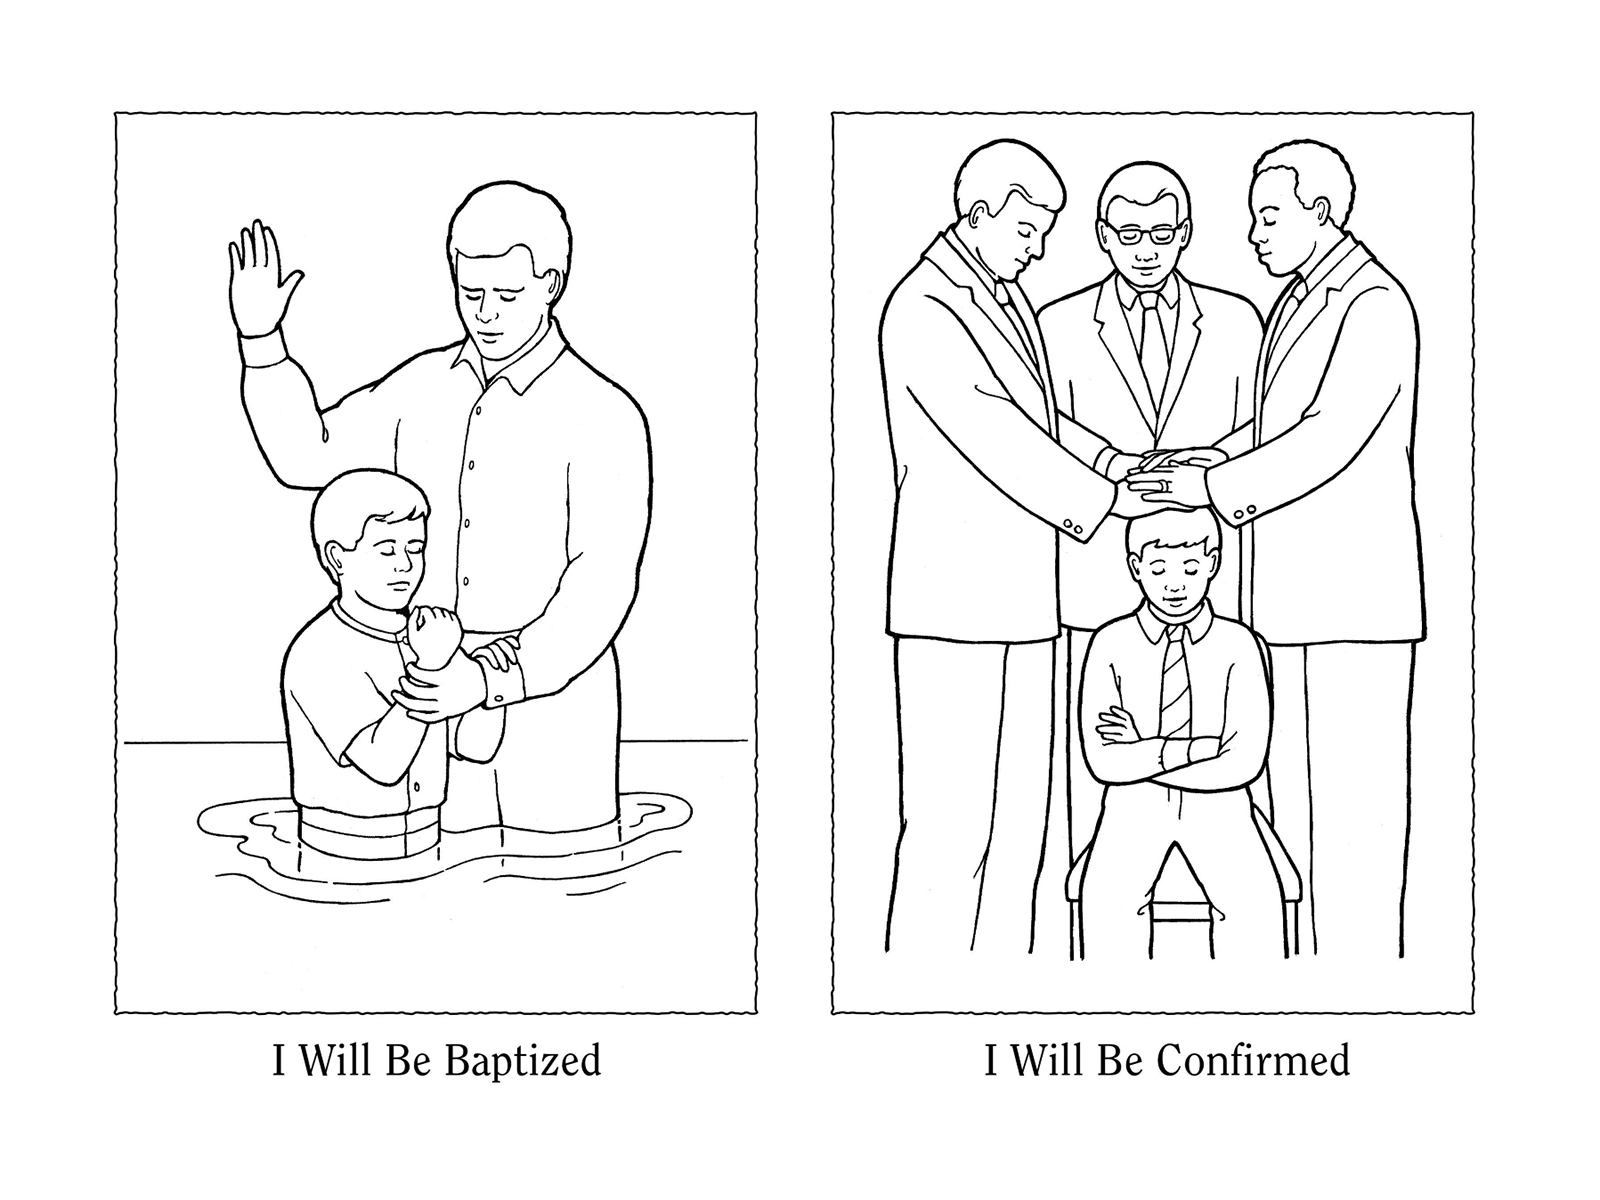 lds baptism coloring pages Nursery Manual Page 111: I Will Be Baptized and Confirmed lds baptism coloring pages